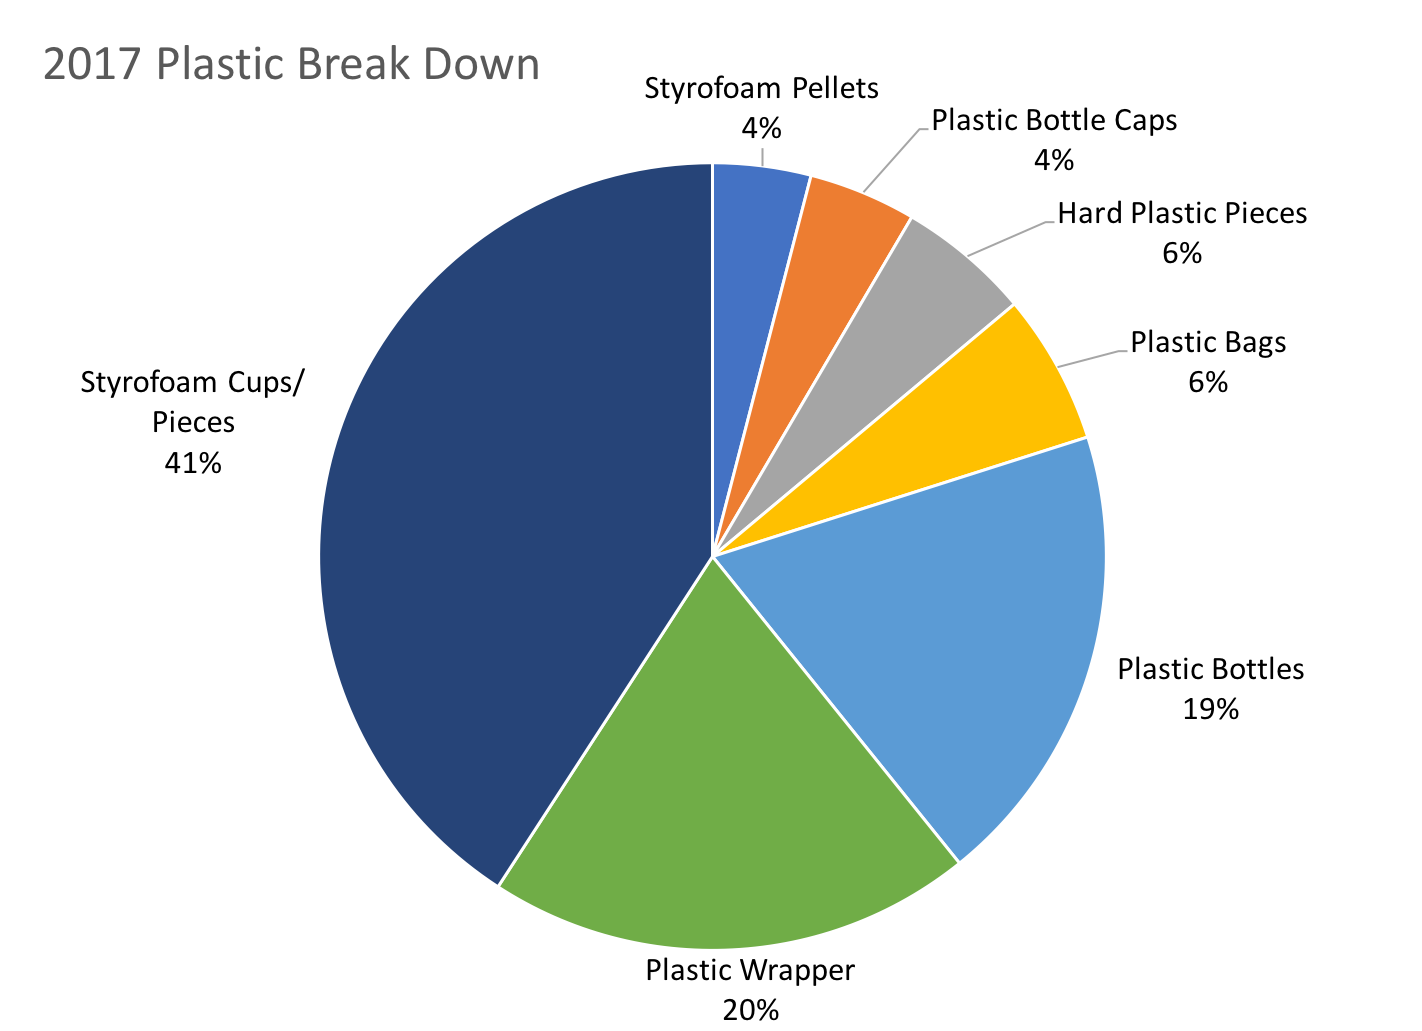 2017 Plastic Break Down.png